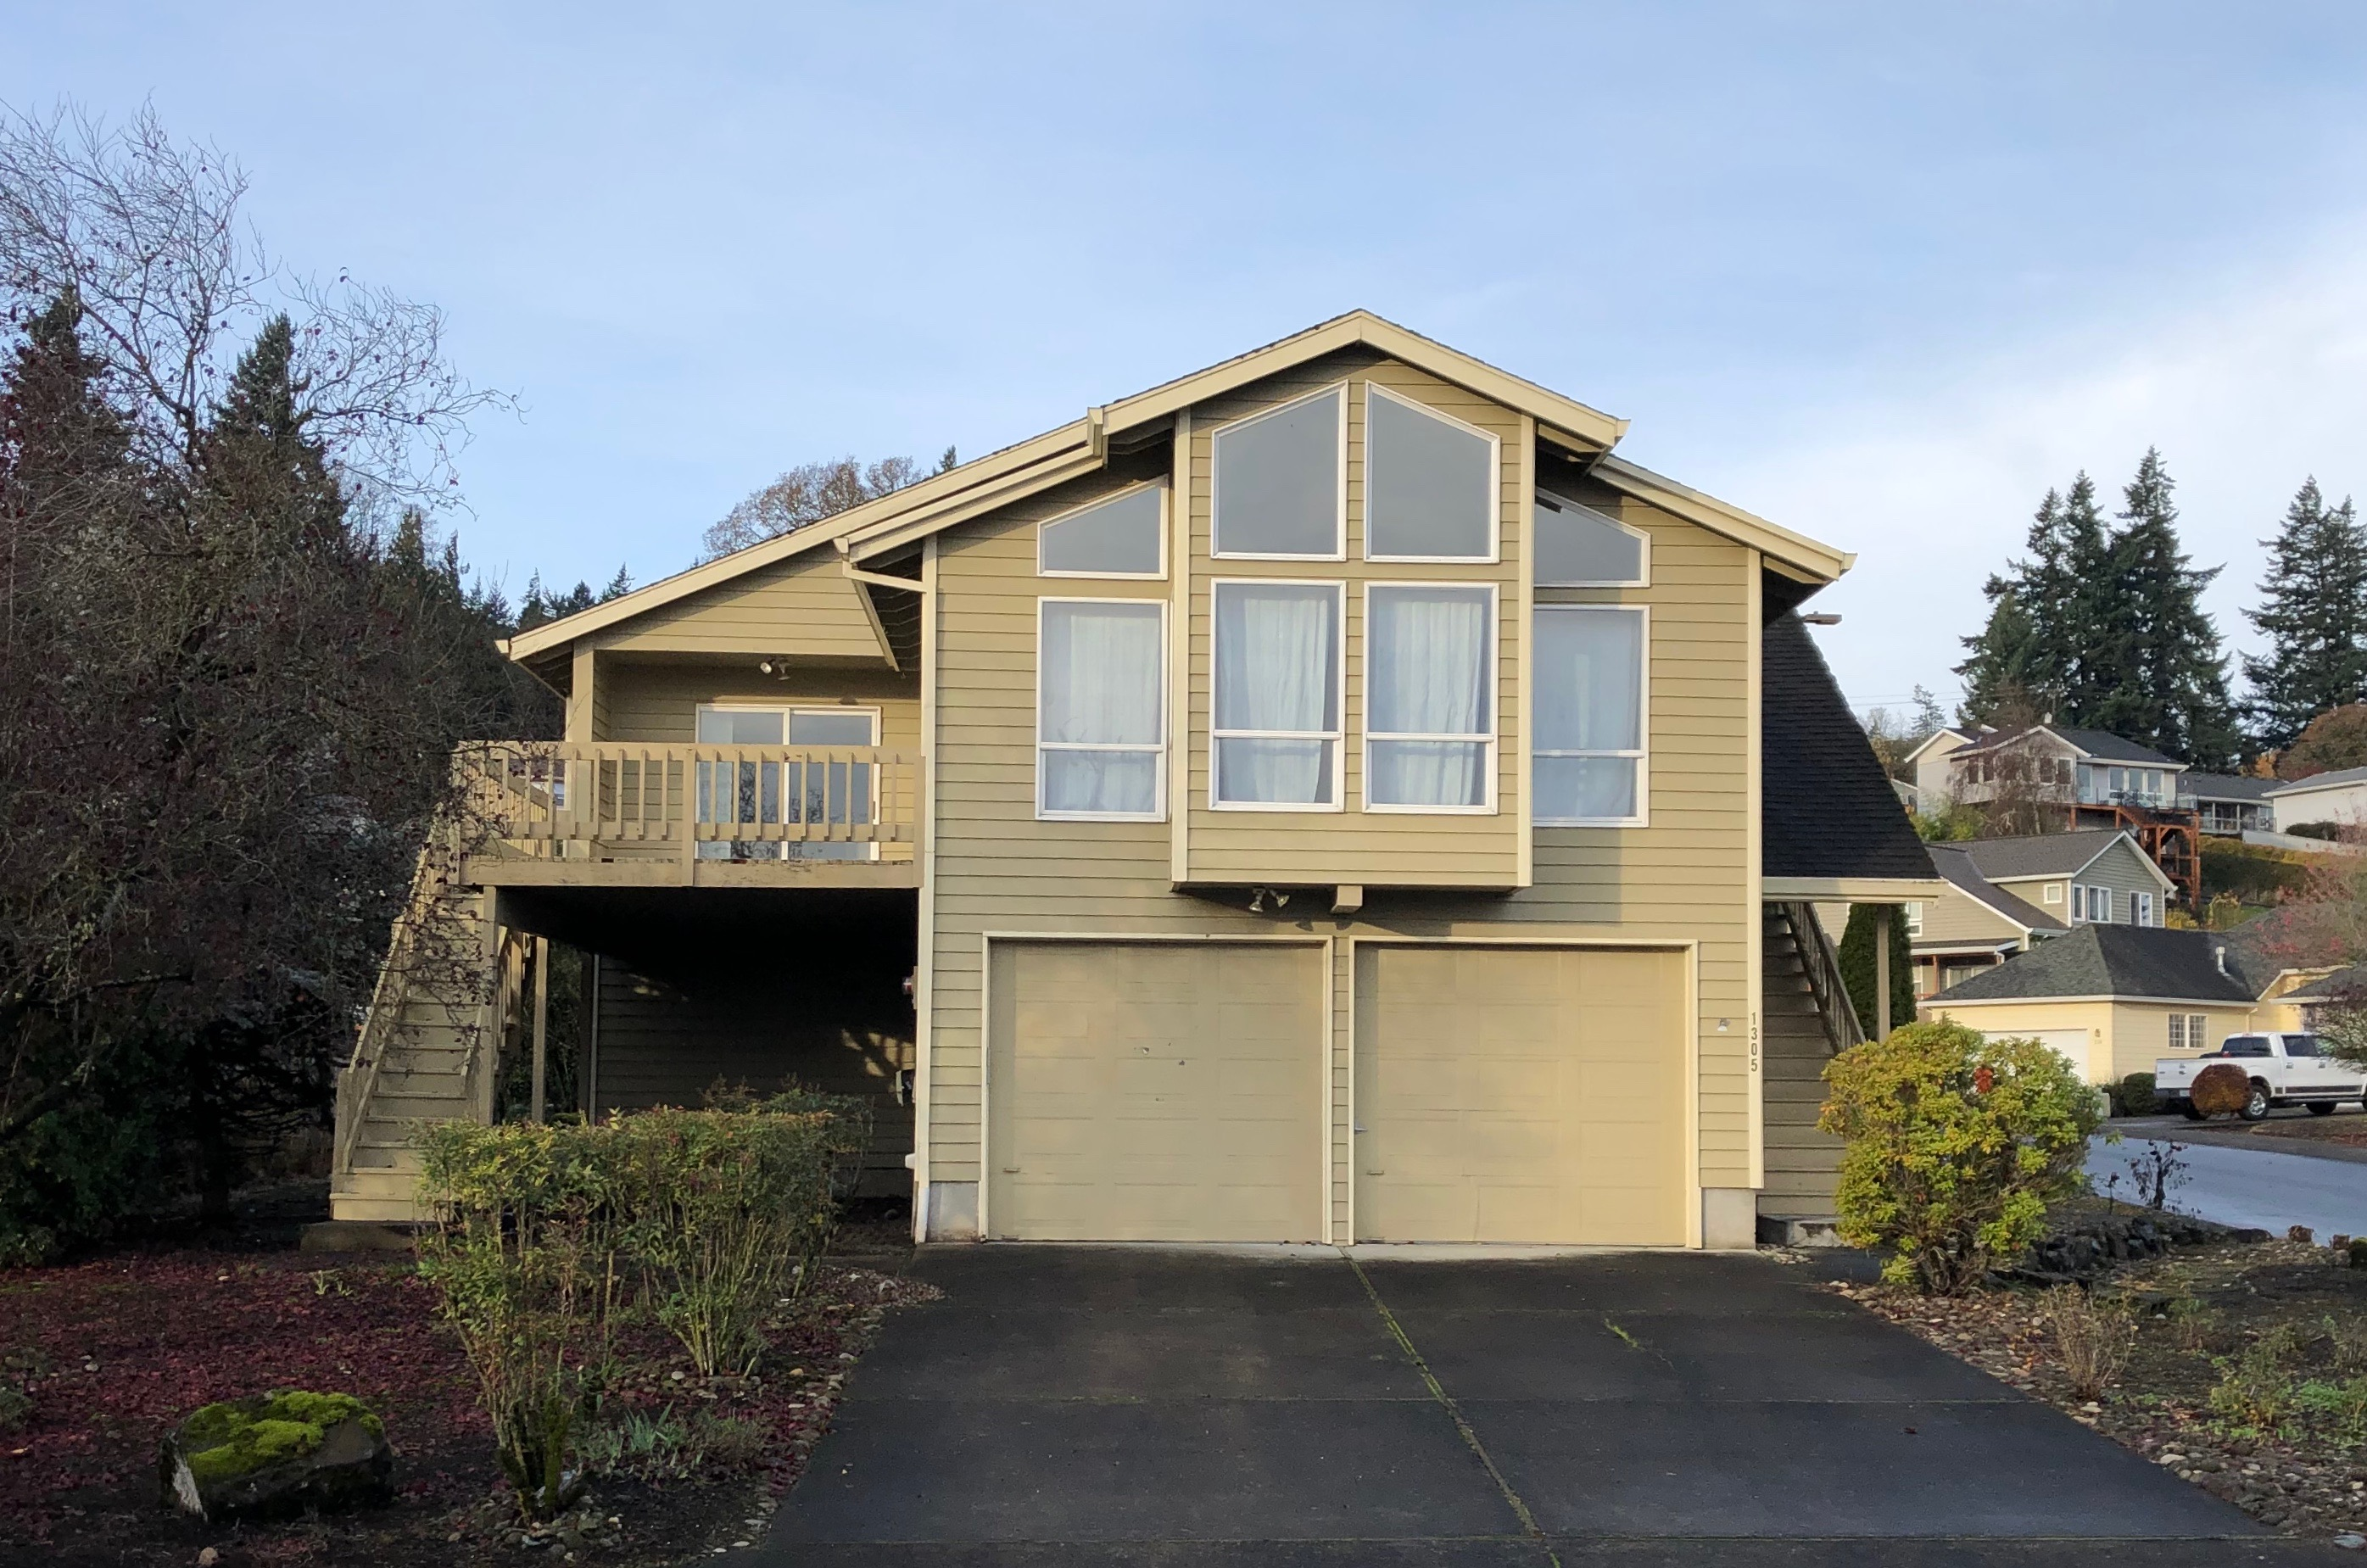 House for Rent in Columbia City